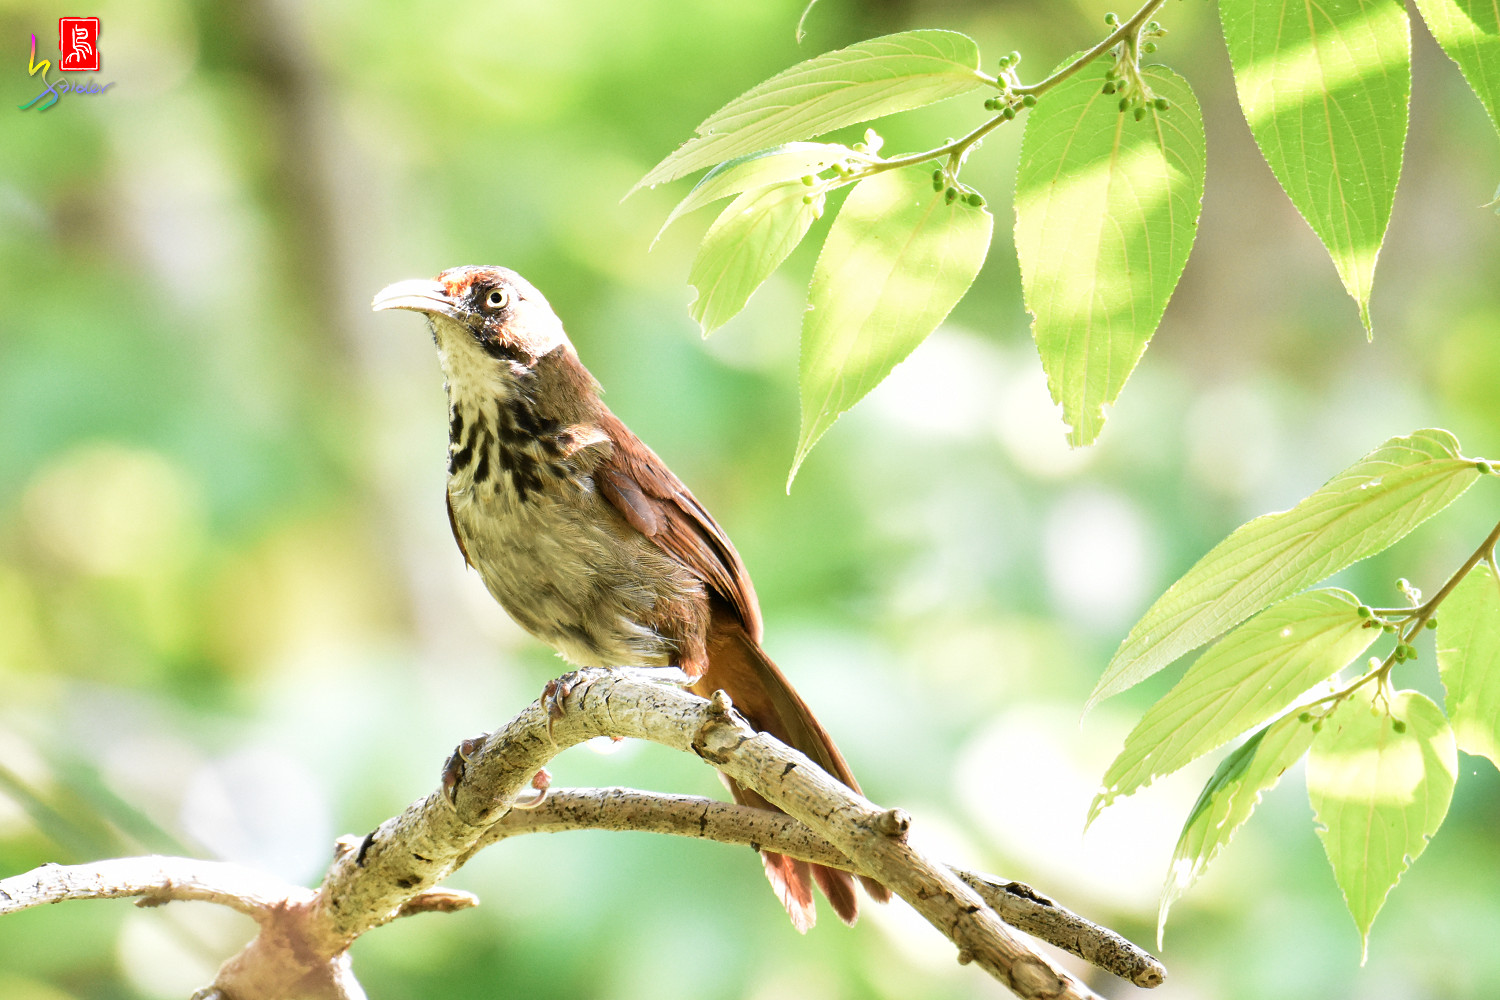 Rusty-cheeked_Scimitar_Babbler_8108